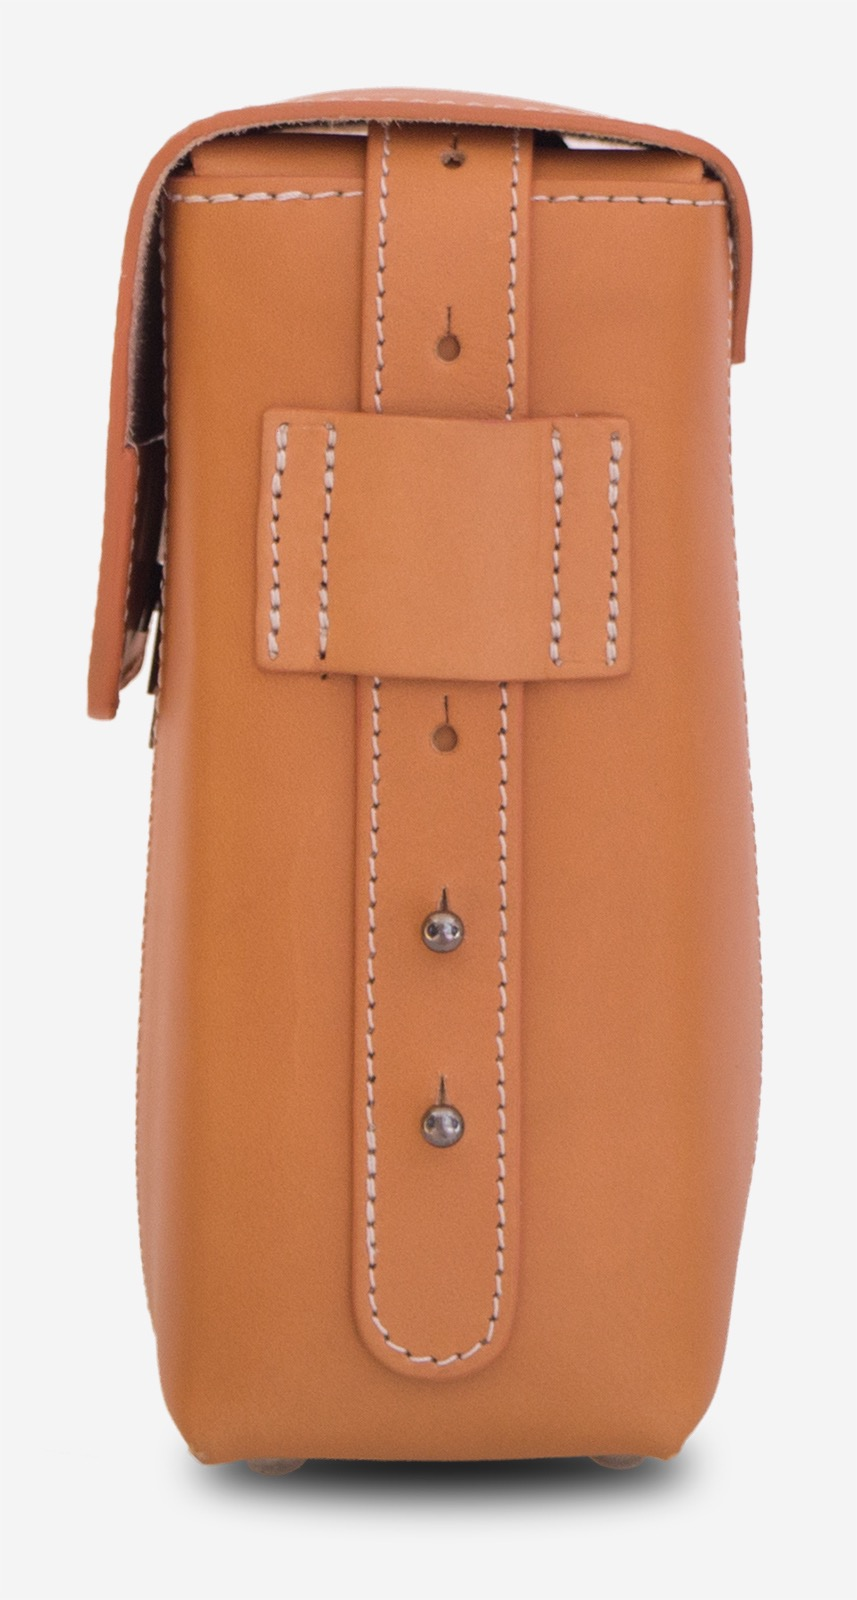 Side view of the small vegetable tanned leather crossbody bag.